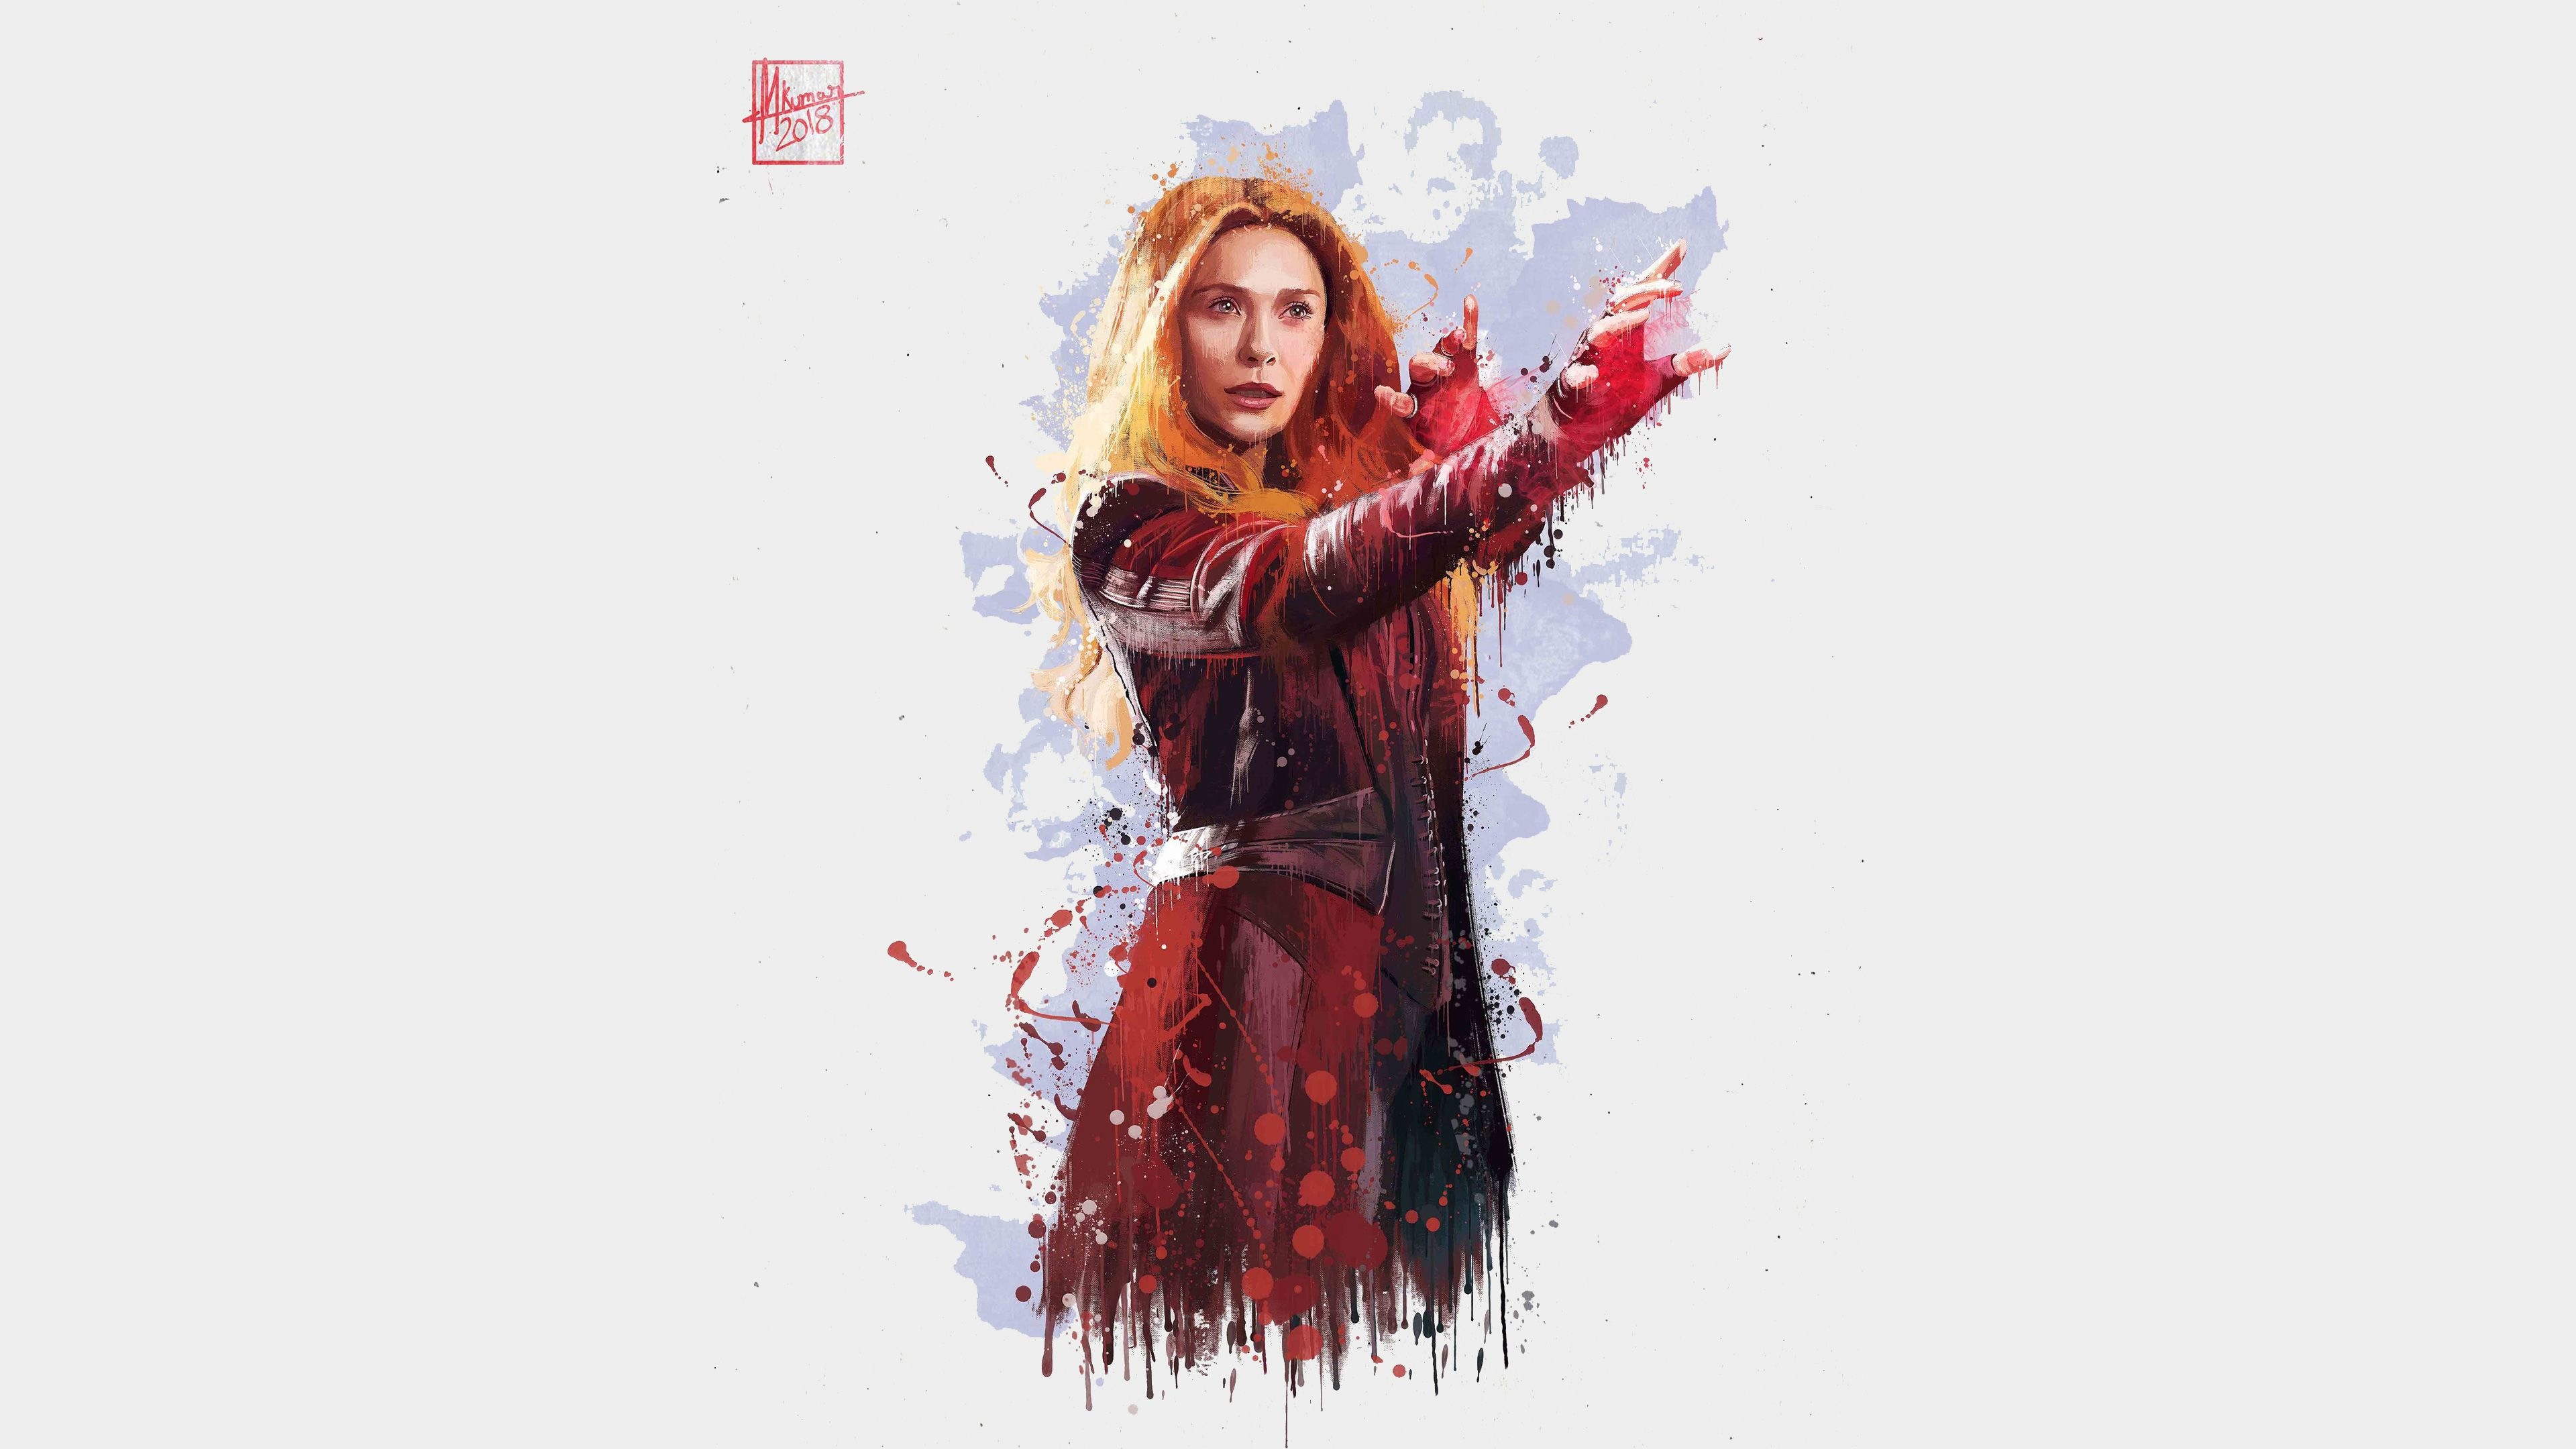 Scarlet Witch Infinity War Scarlet Witch In Avengers Infinity War 2018 4k Artwork Hd Witch Wallpaper Scarlet Witch Avengers Scarlet Witch